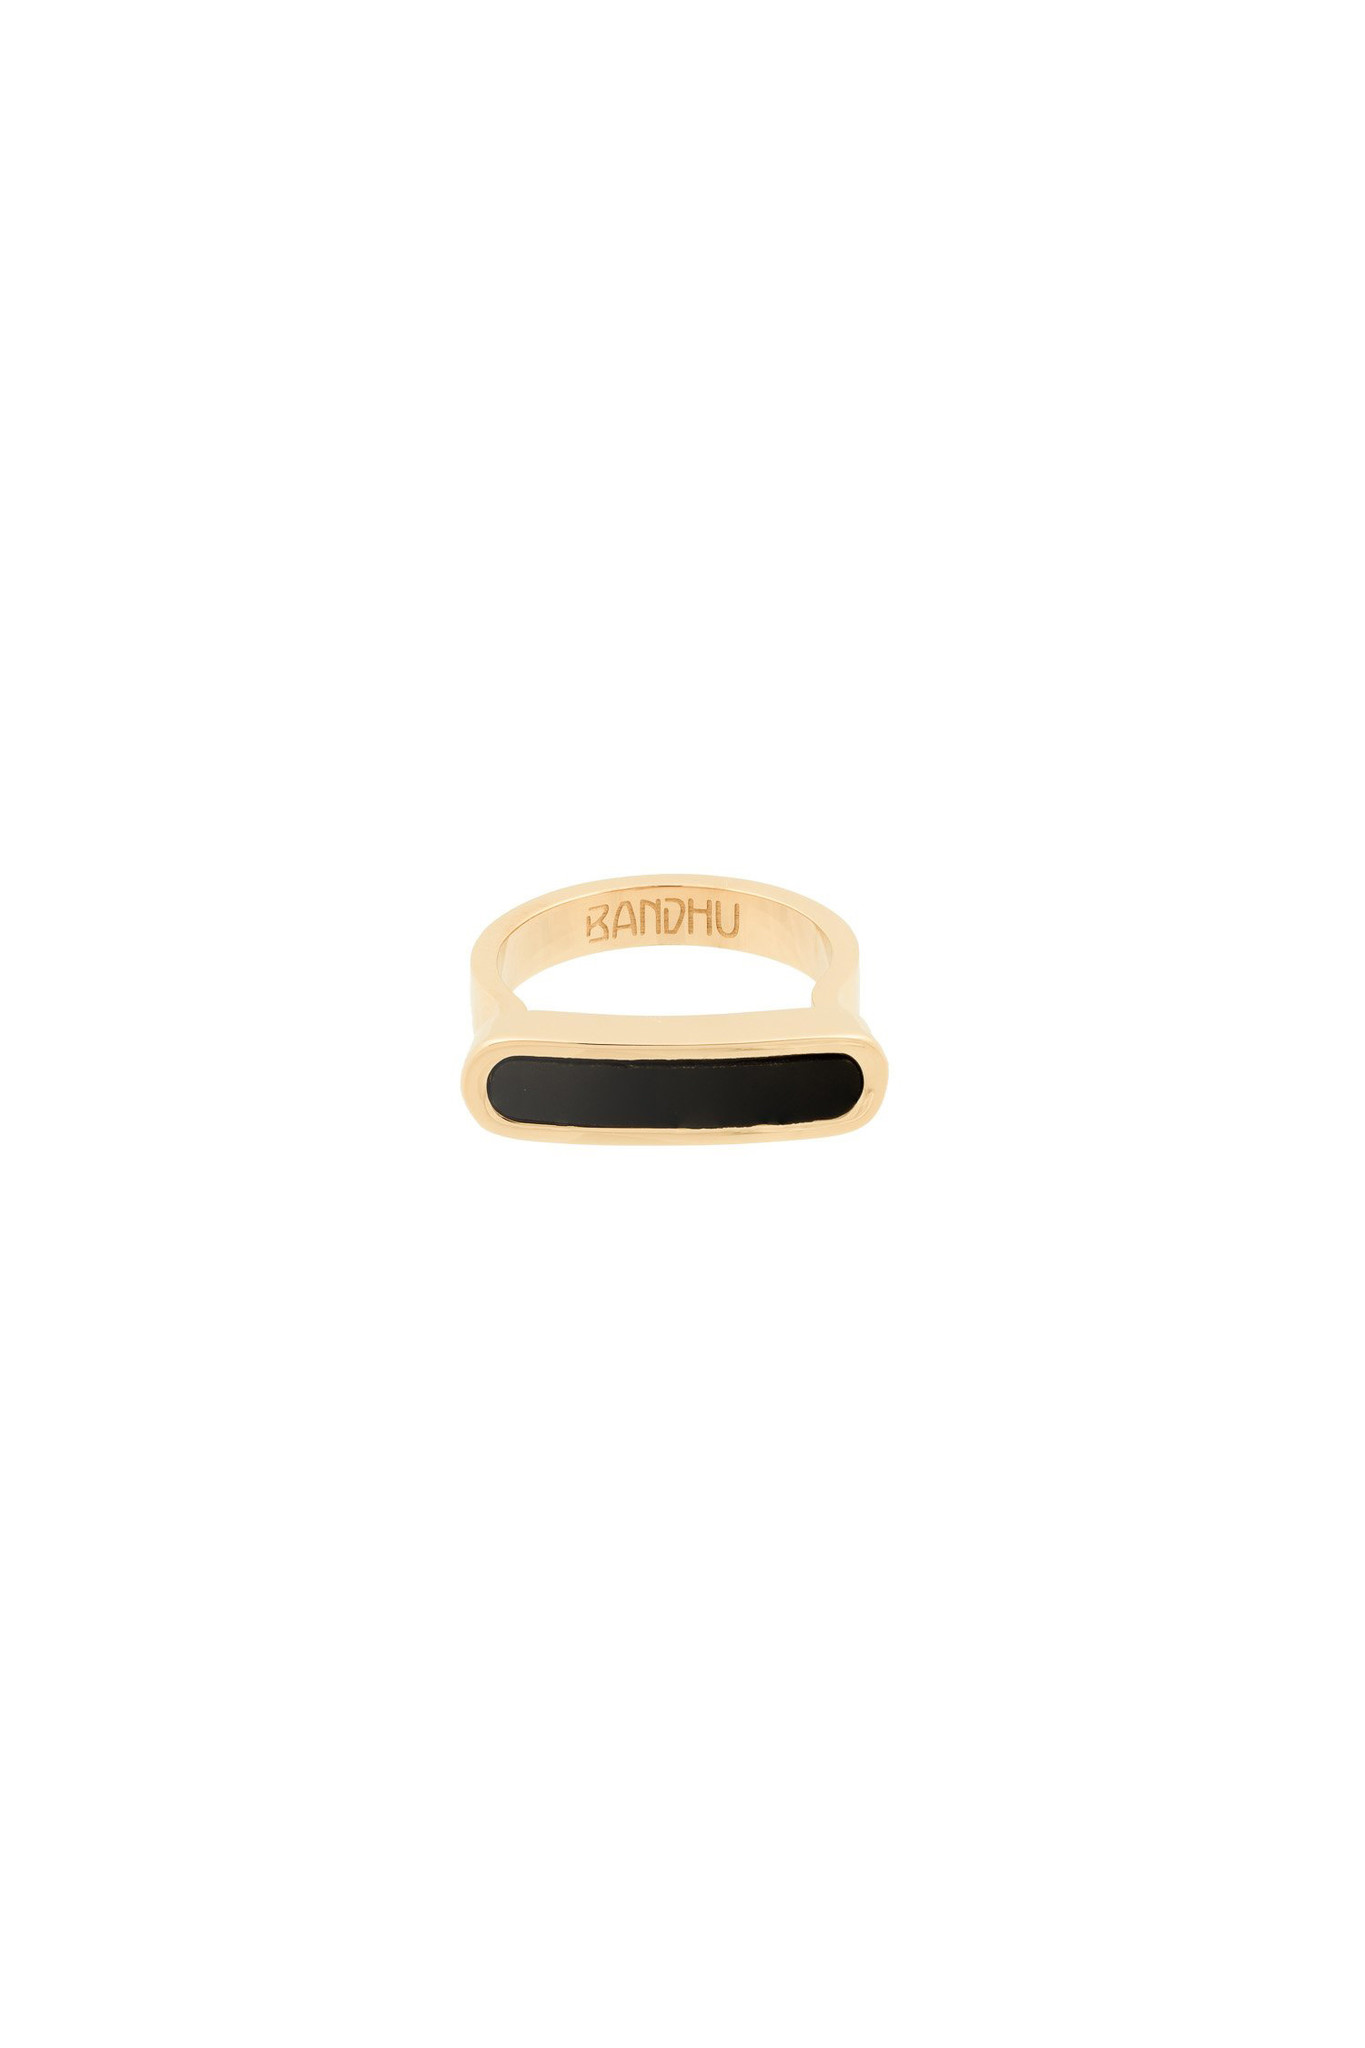 Energy Muse Ring - Gold with Black Onyx-2